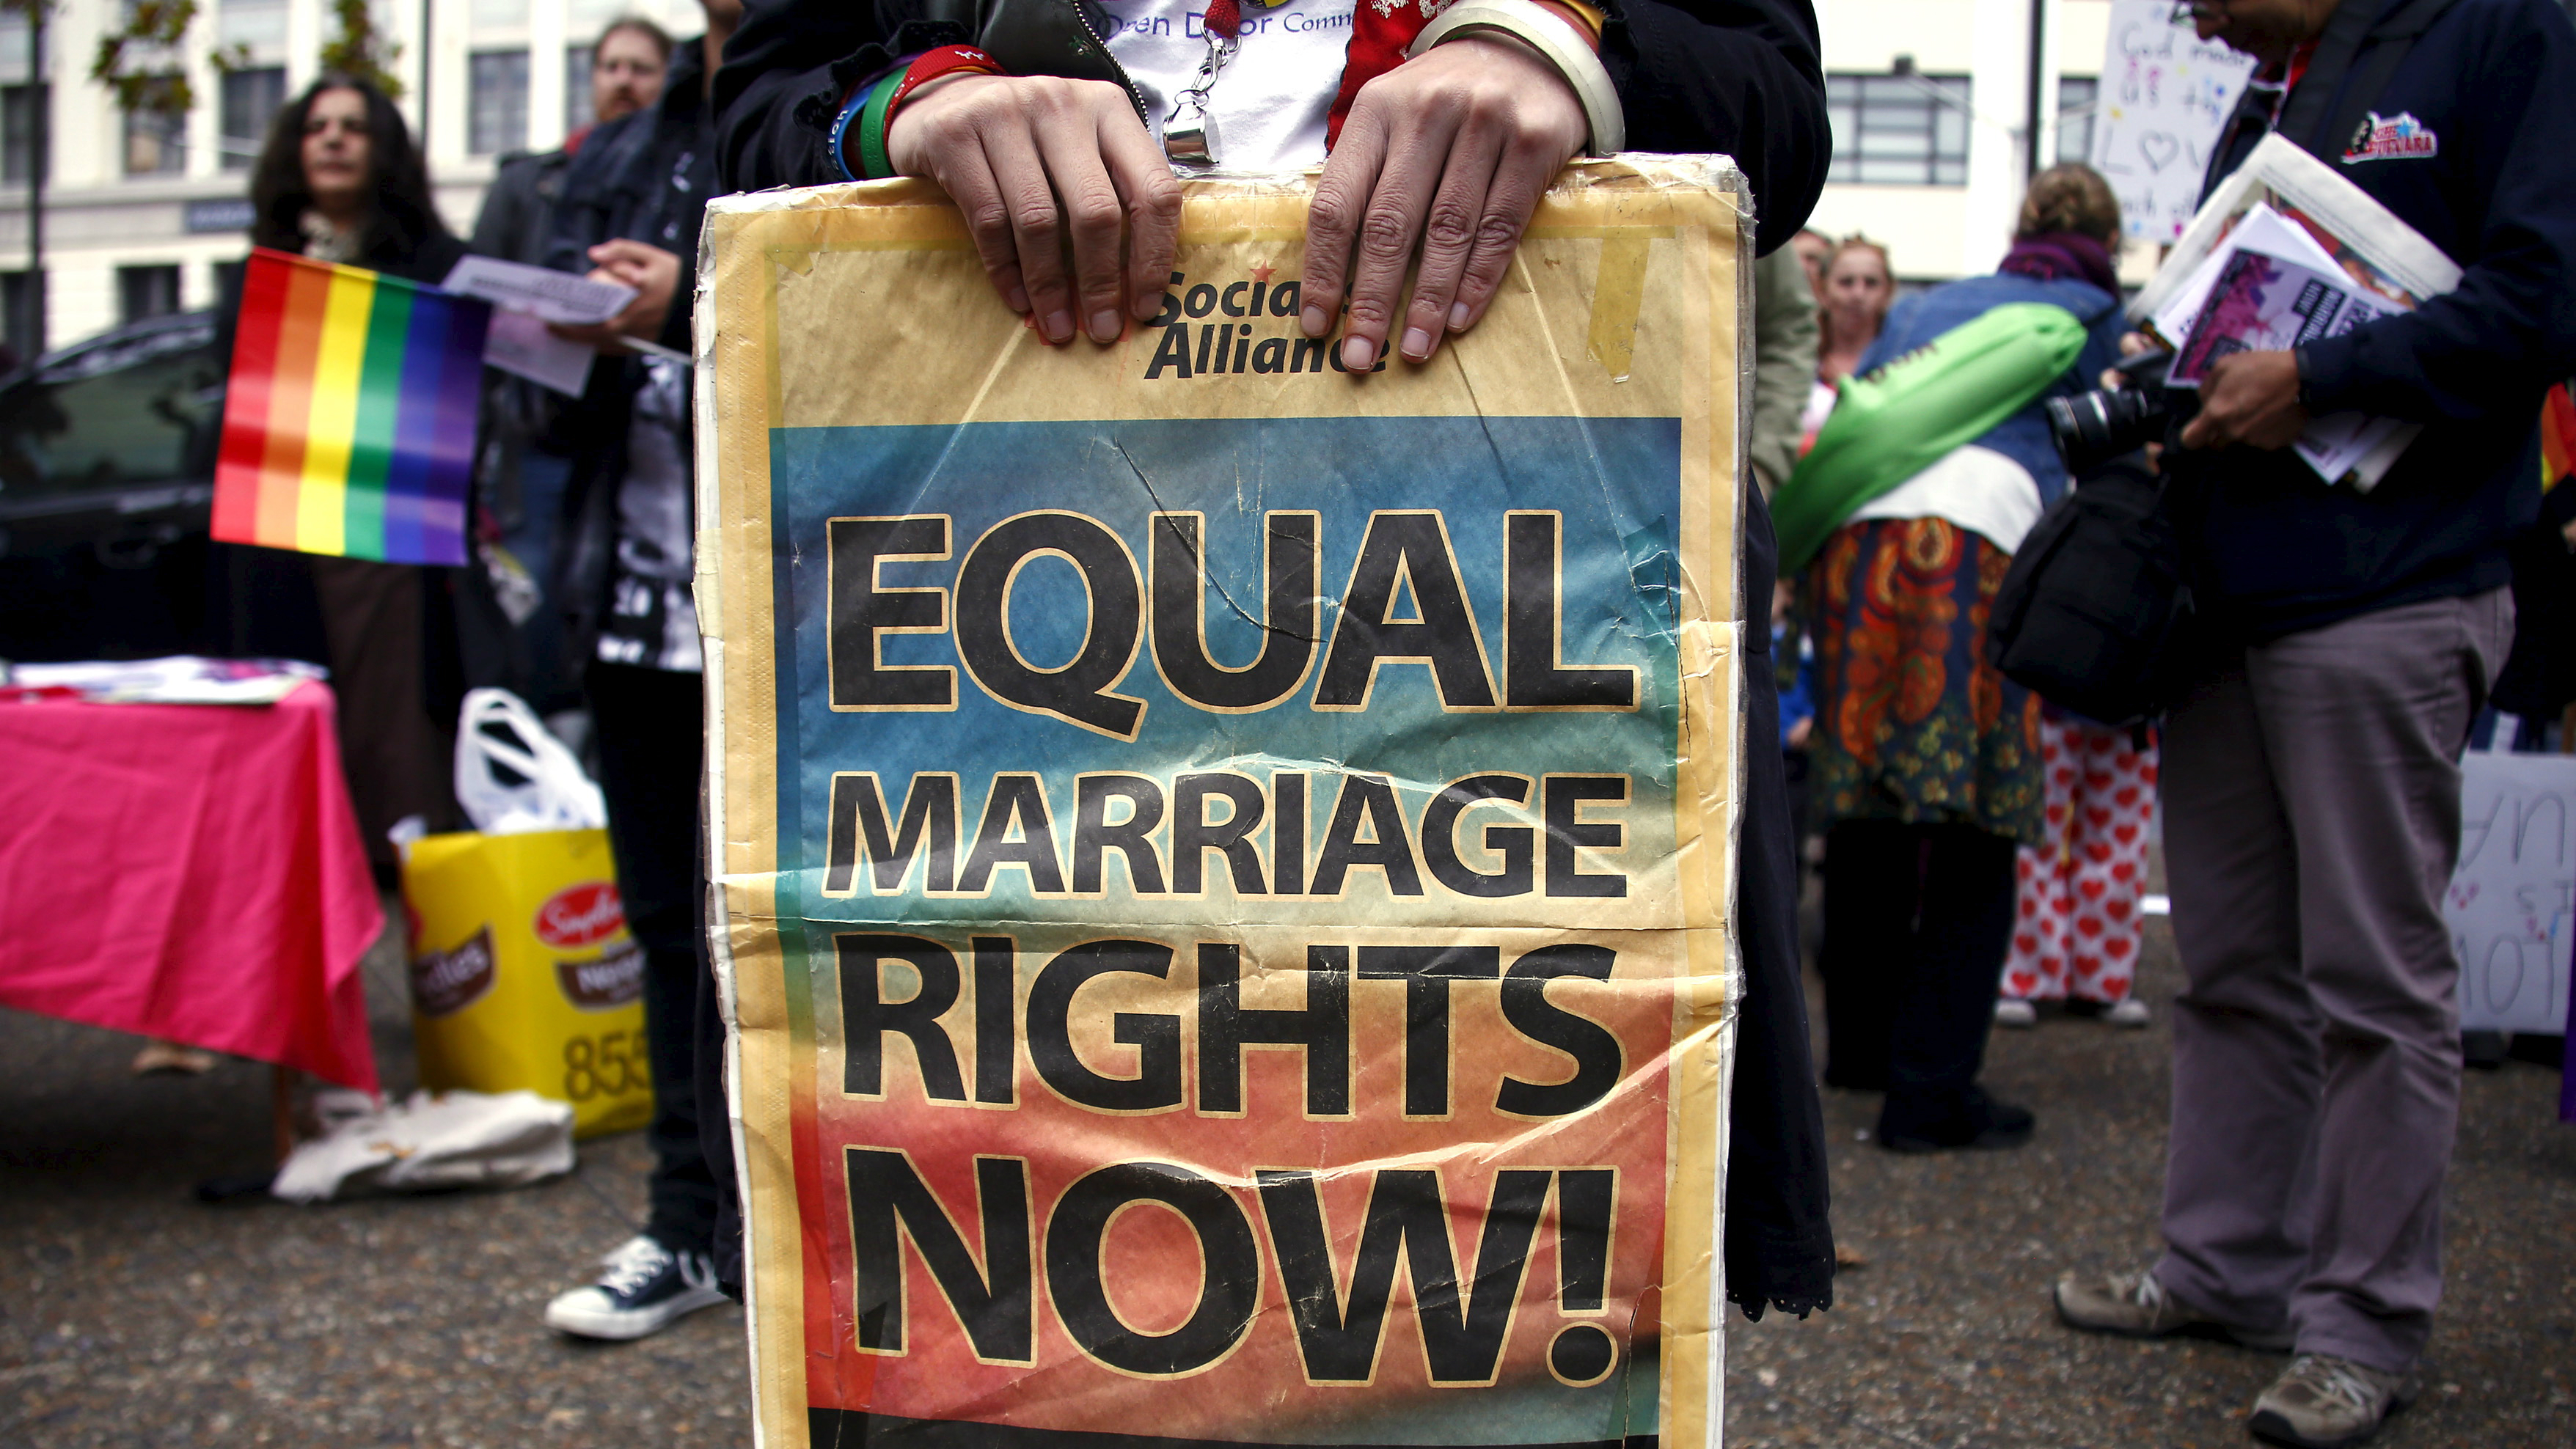 A gay rights activist holds a placard during a rally supporting same-sex marriage, in Sydney, Australia, May 31, 2015.